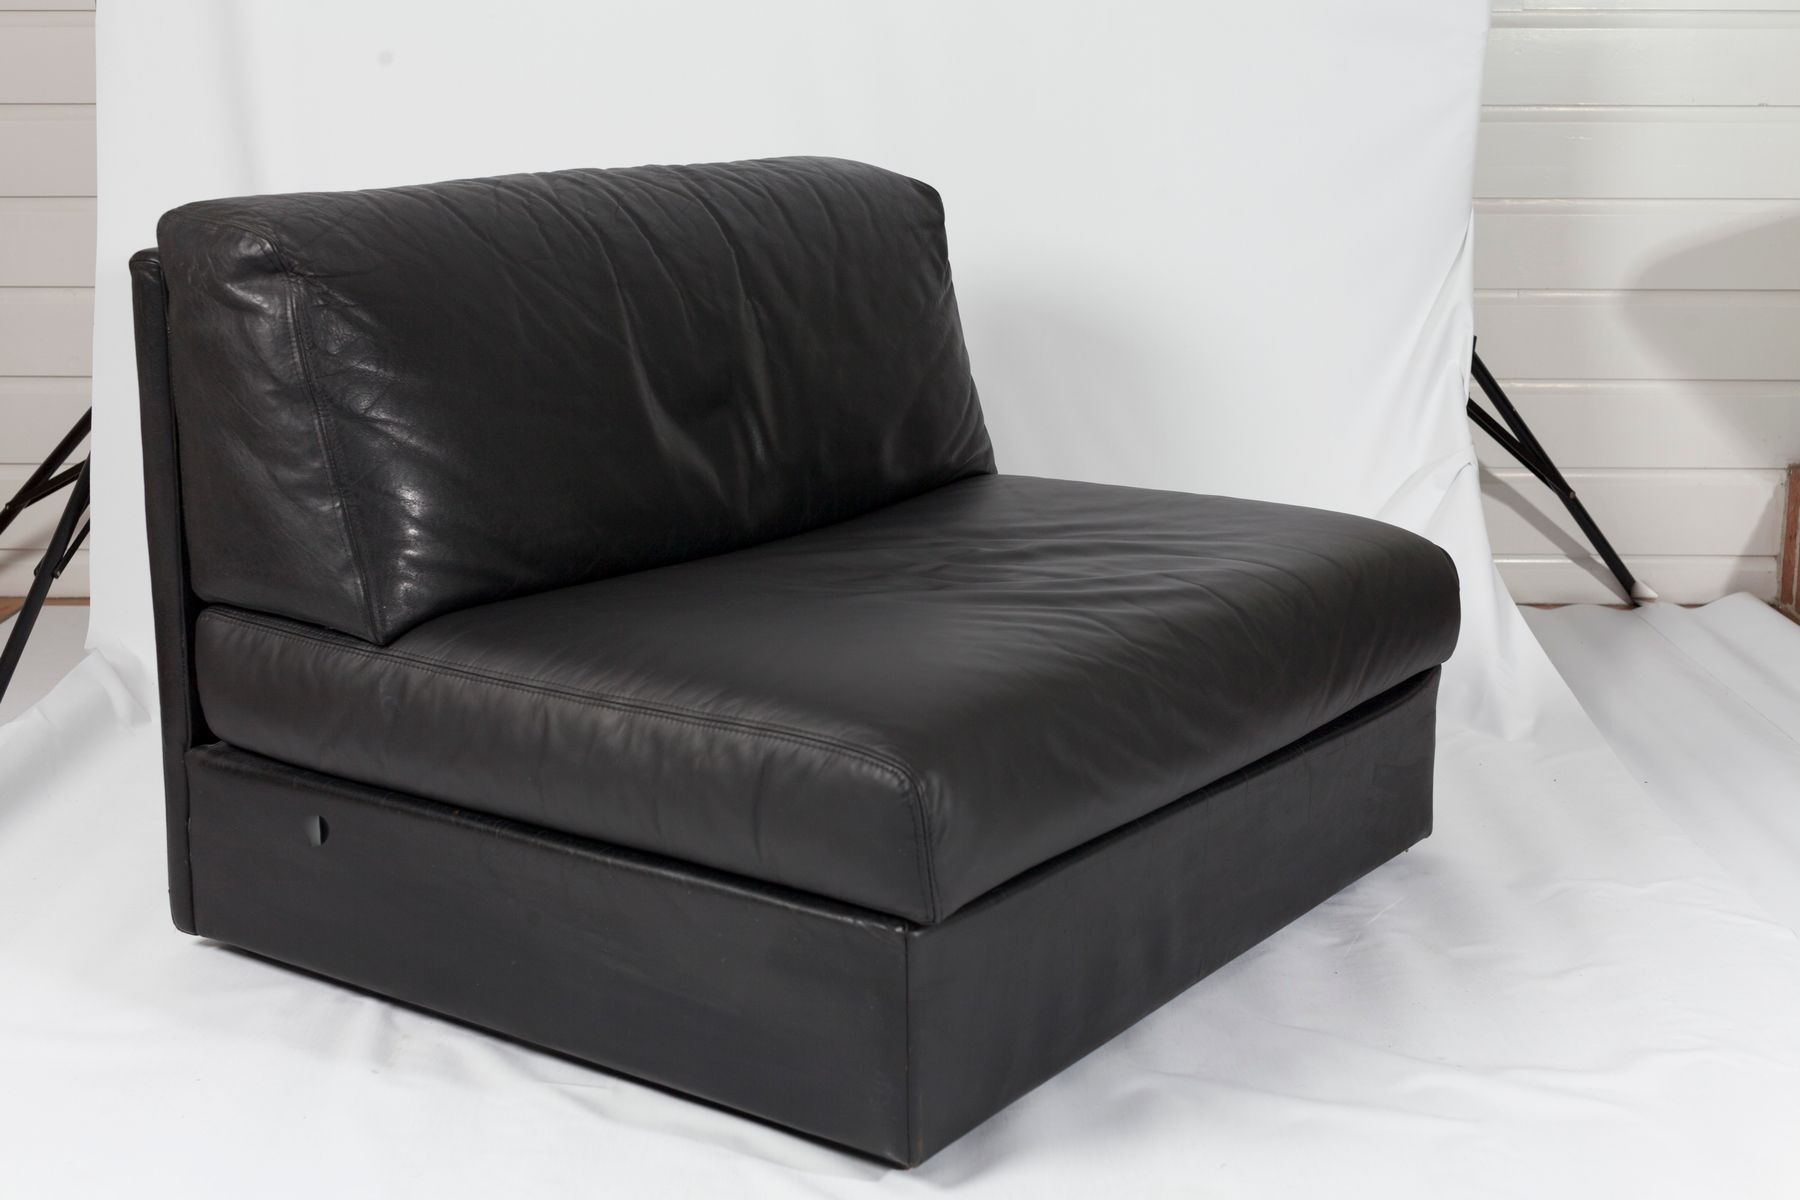 Black leather sectional sofa 1980s for sale at pamono for Black leather sectional sofa uk